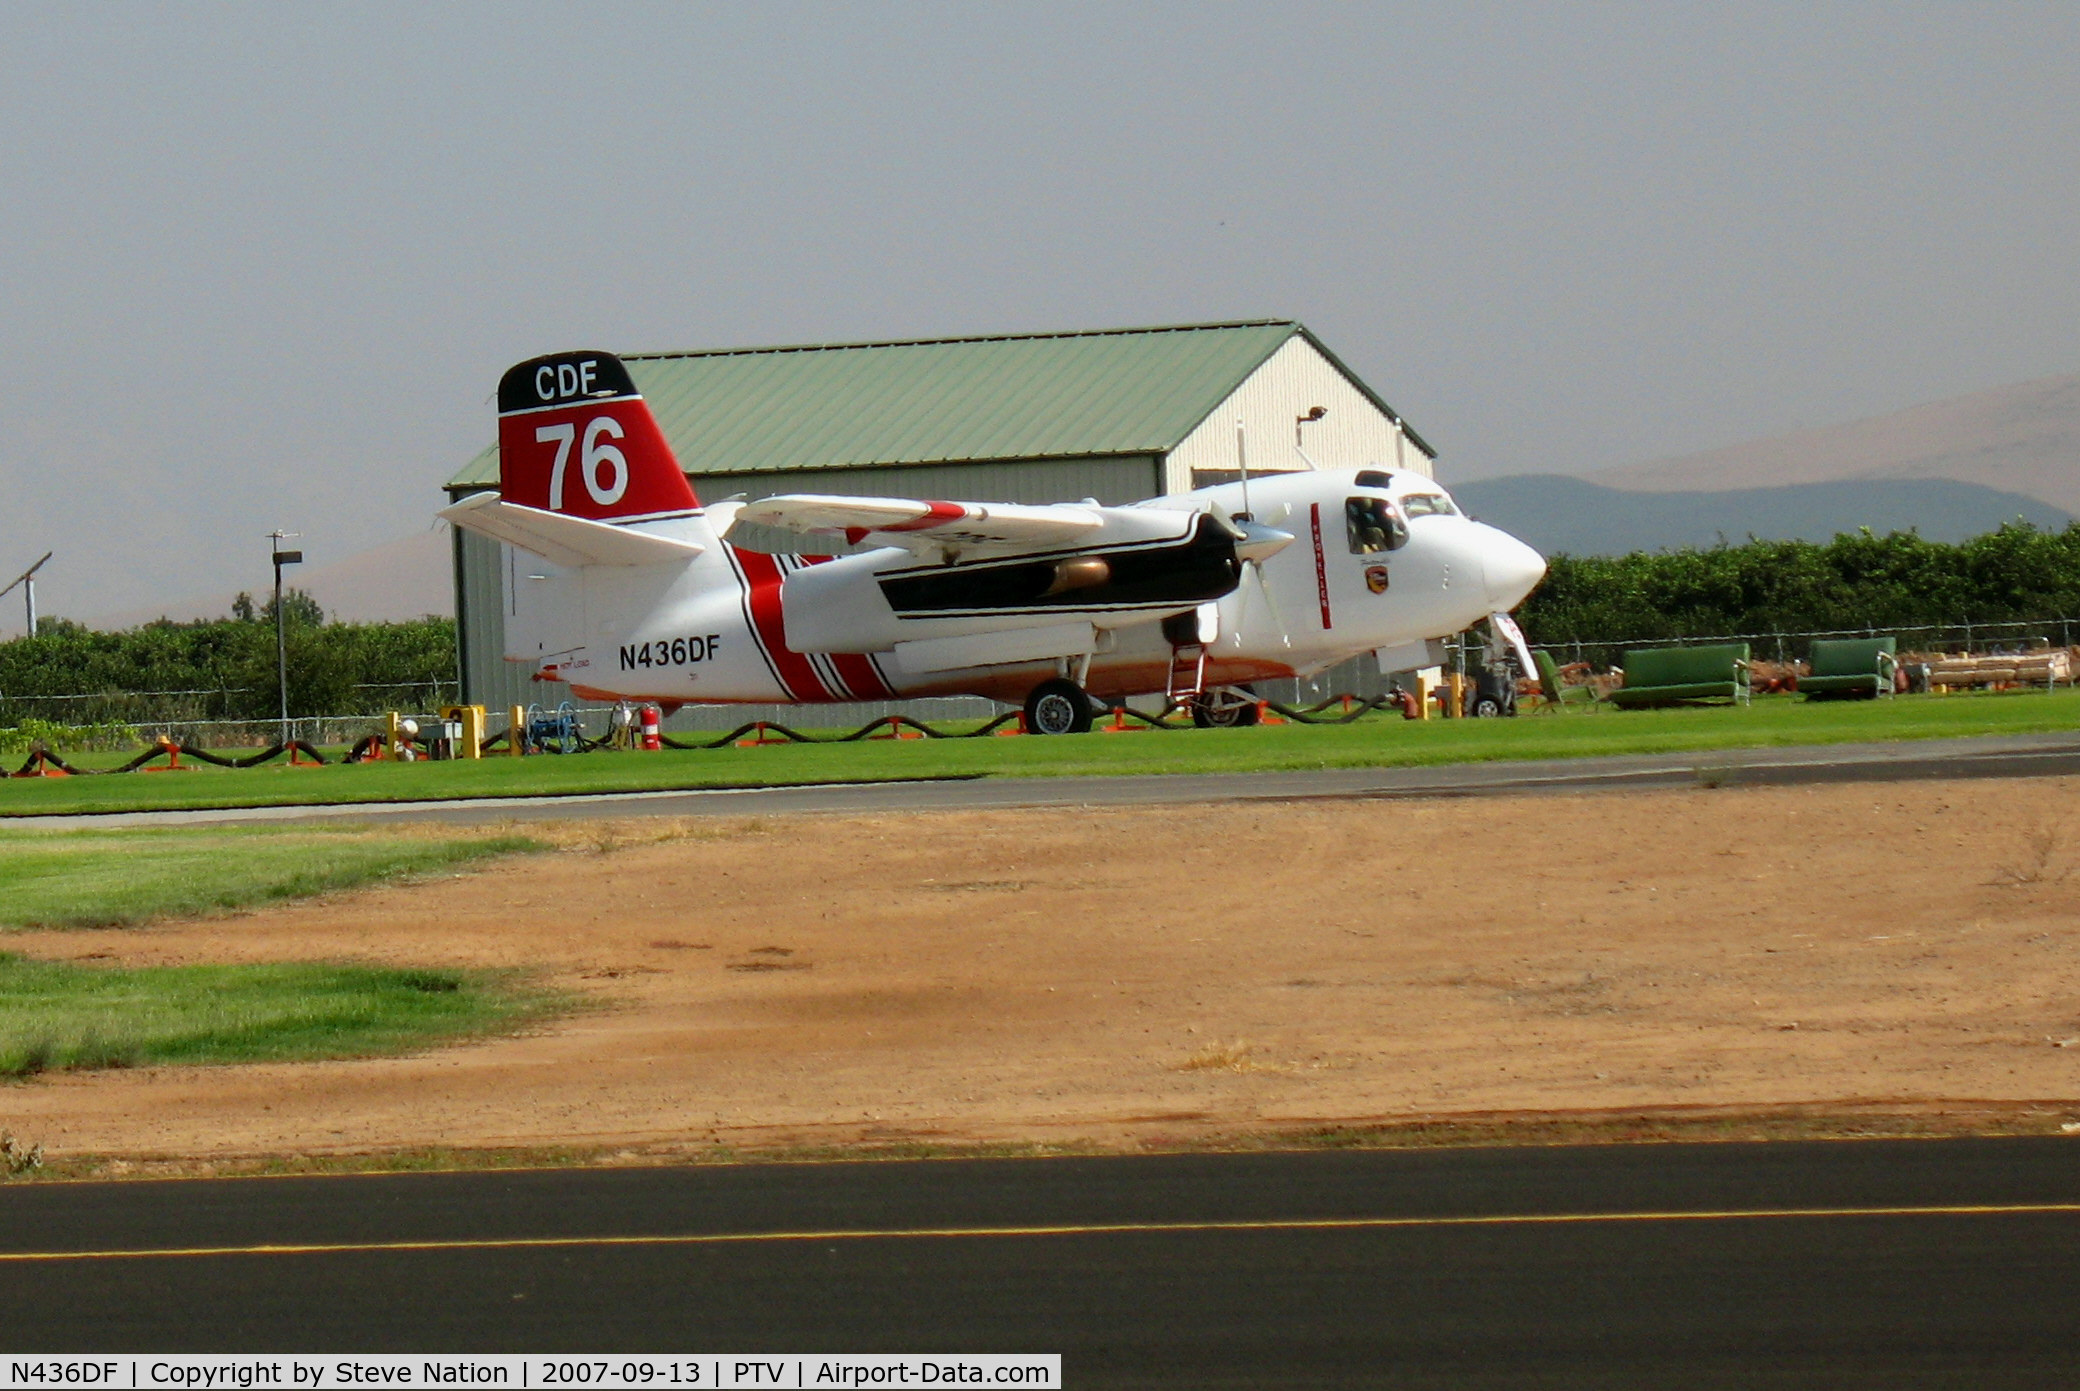 N436DF, 2001 Marsh Aviation S-2F3AT C/N 152337, CDF (CALFIRE) Grumman/Marsh S-F3AT Tanker #76